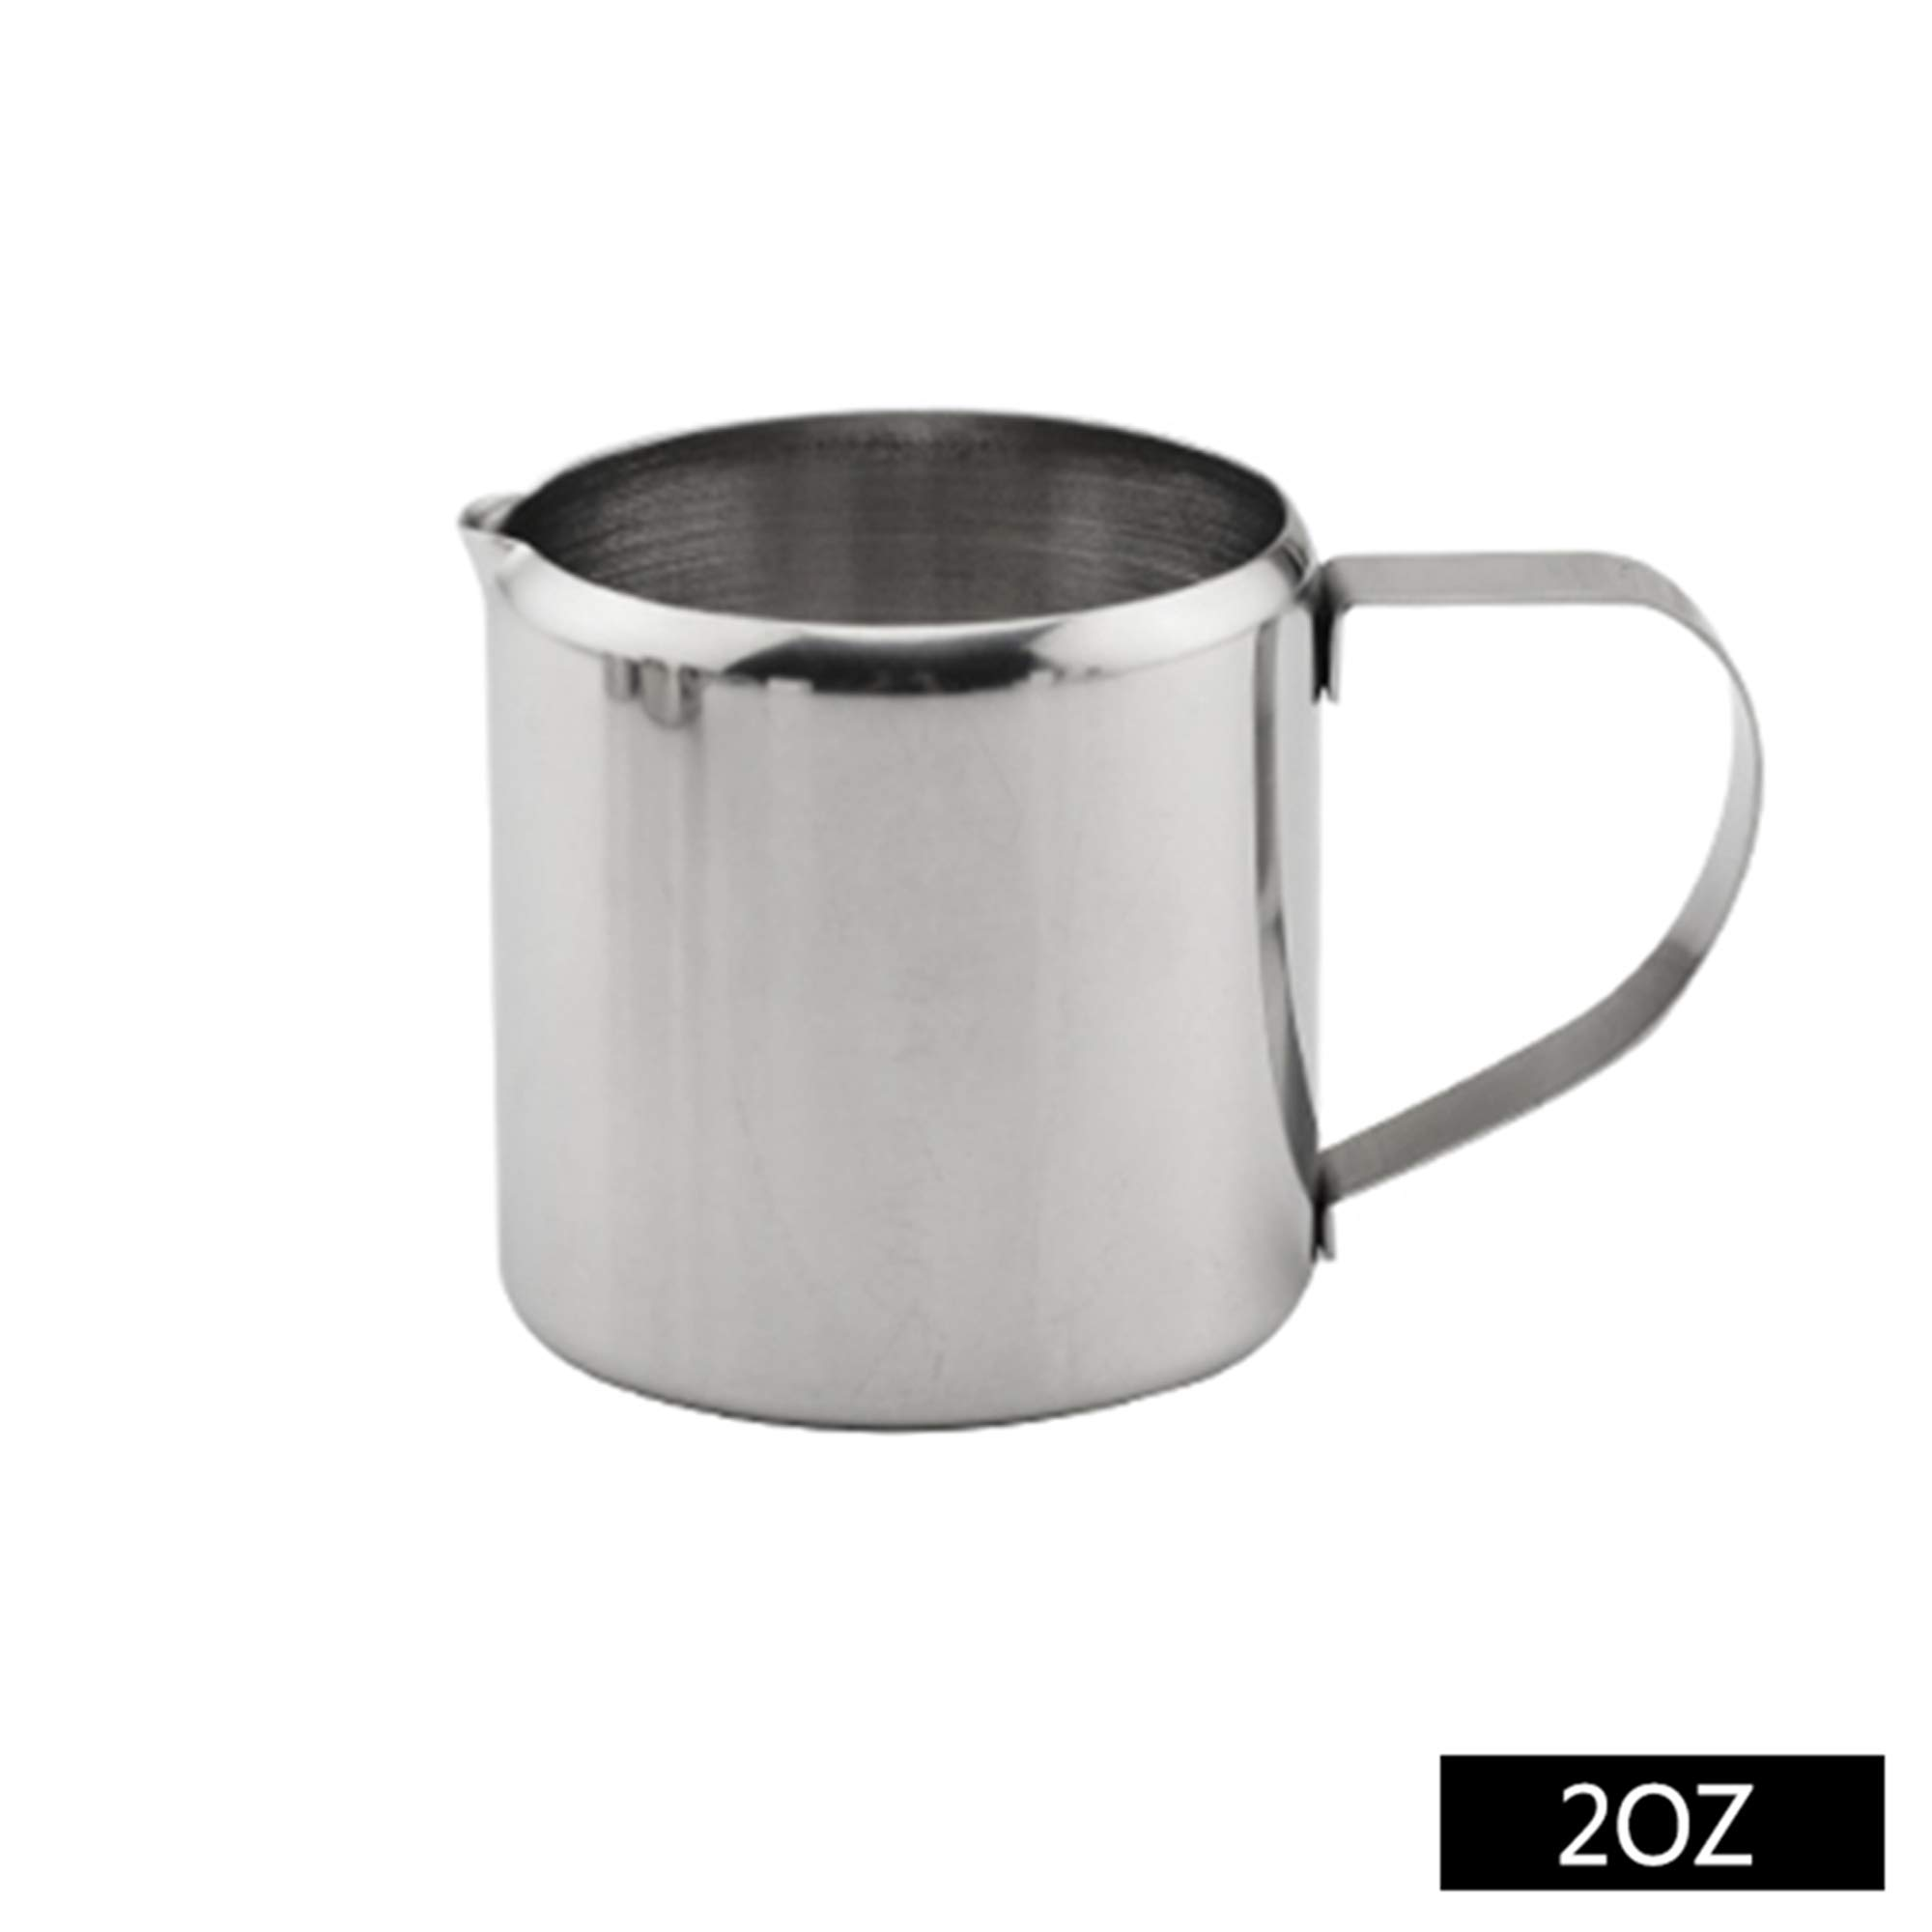 Stainless Steel Milk Frothing Jug Coffee Cream Espresso Coffee Pitcher Cup Latte Art Spout Durable (2oz)